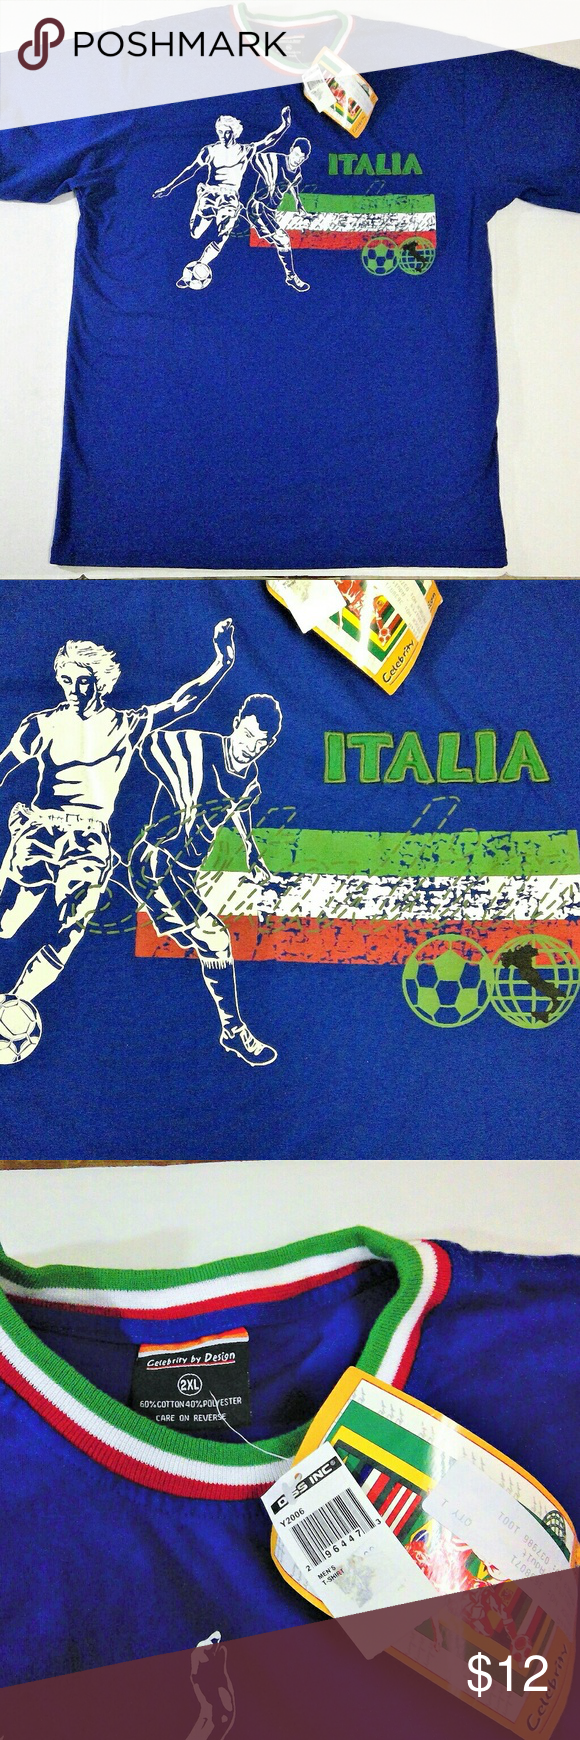 Italia Soccer T-Shirt NWT Brand NEW with tags Italy soccer tee. Very cool design. Men's size XXL. FIFA Shirts Tees - Short Sleeve